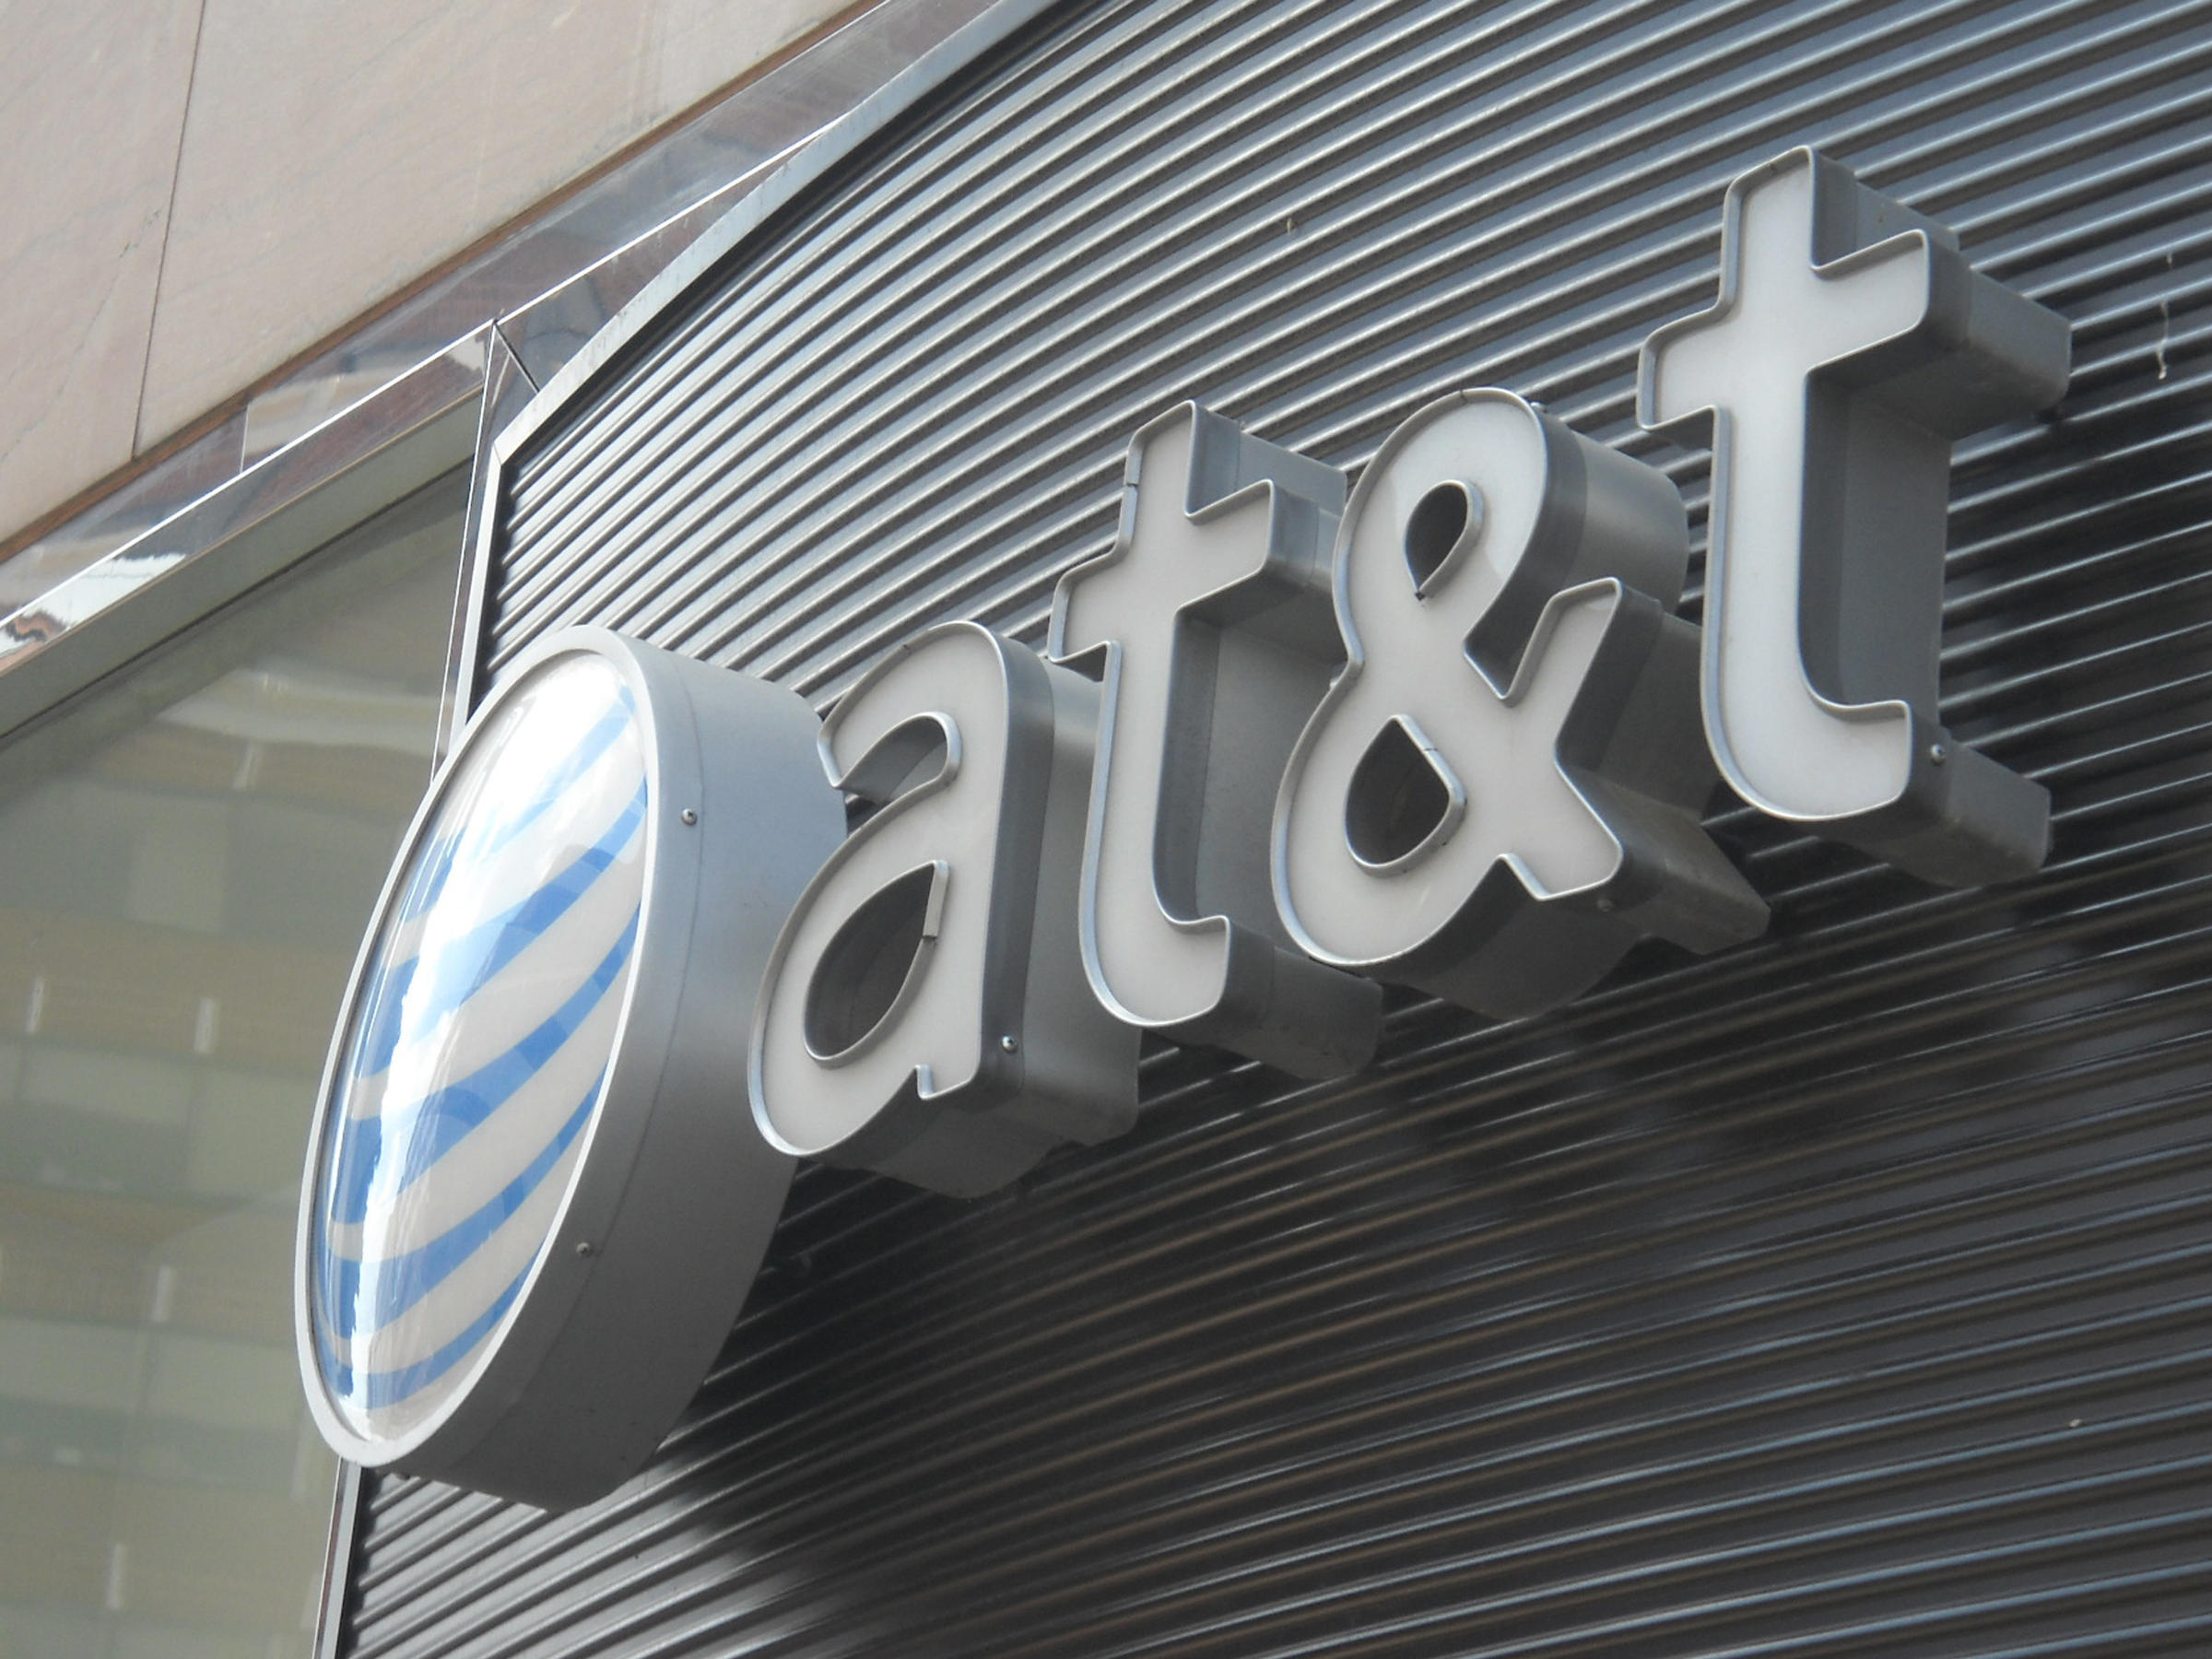 AT&T confident court will reject Justice Department challenge to Time Warner deal